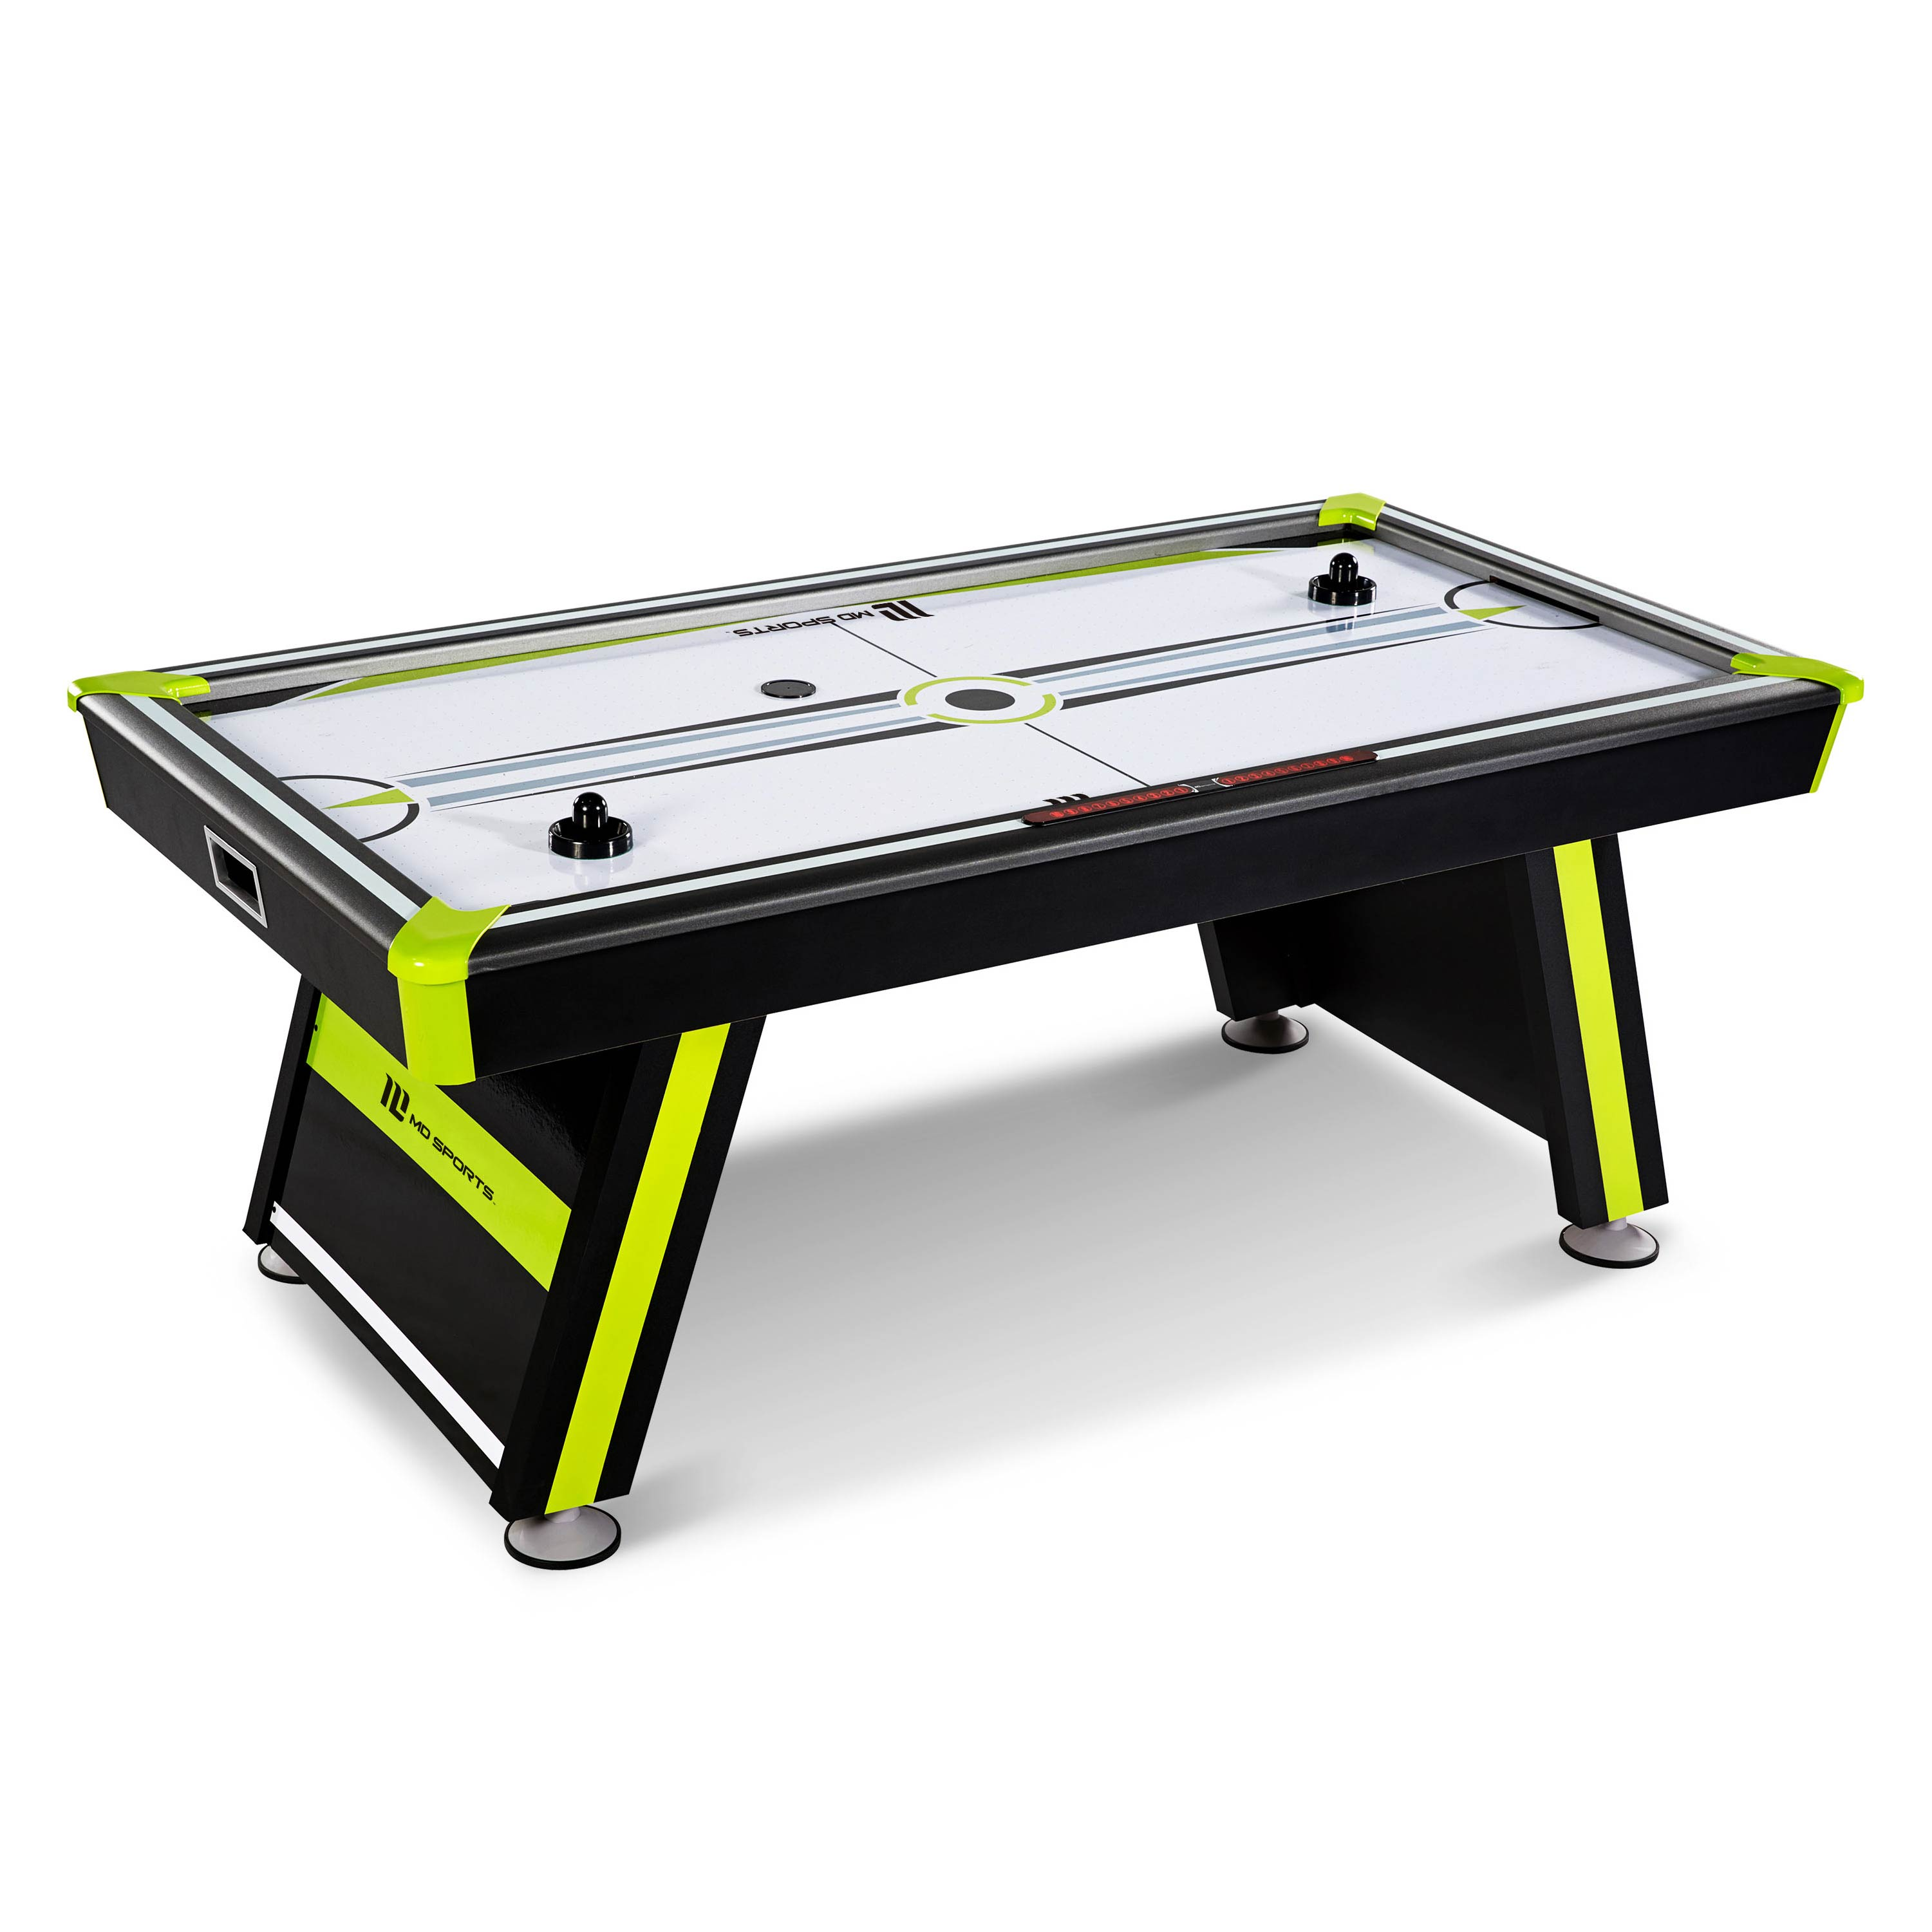 MD Sports 80 inch Air Powered Hockey Table, Includes 2 pushers and 2 pucks, Back/Green